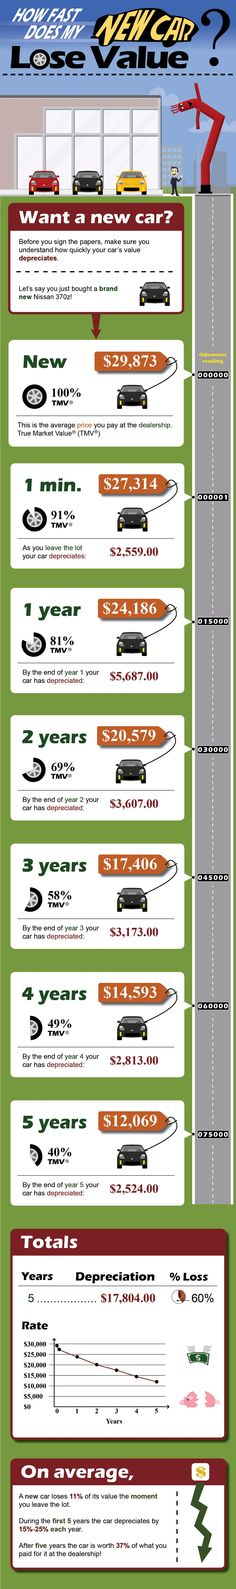 Depreciation Infographic: How Fast Does My New Car Lose Value? Edmunds.com